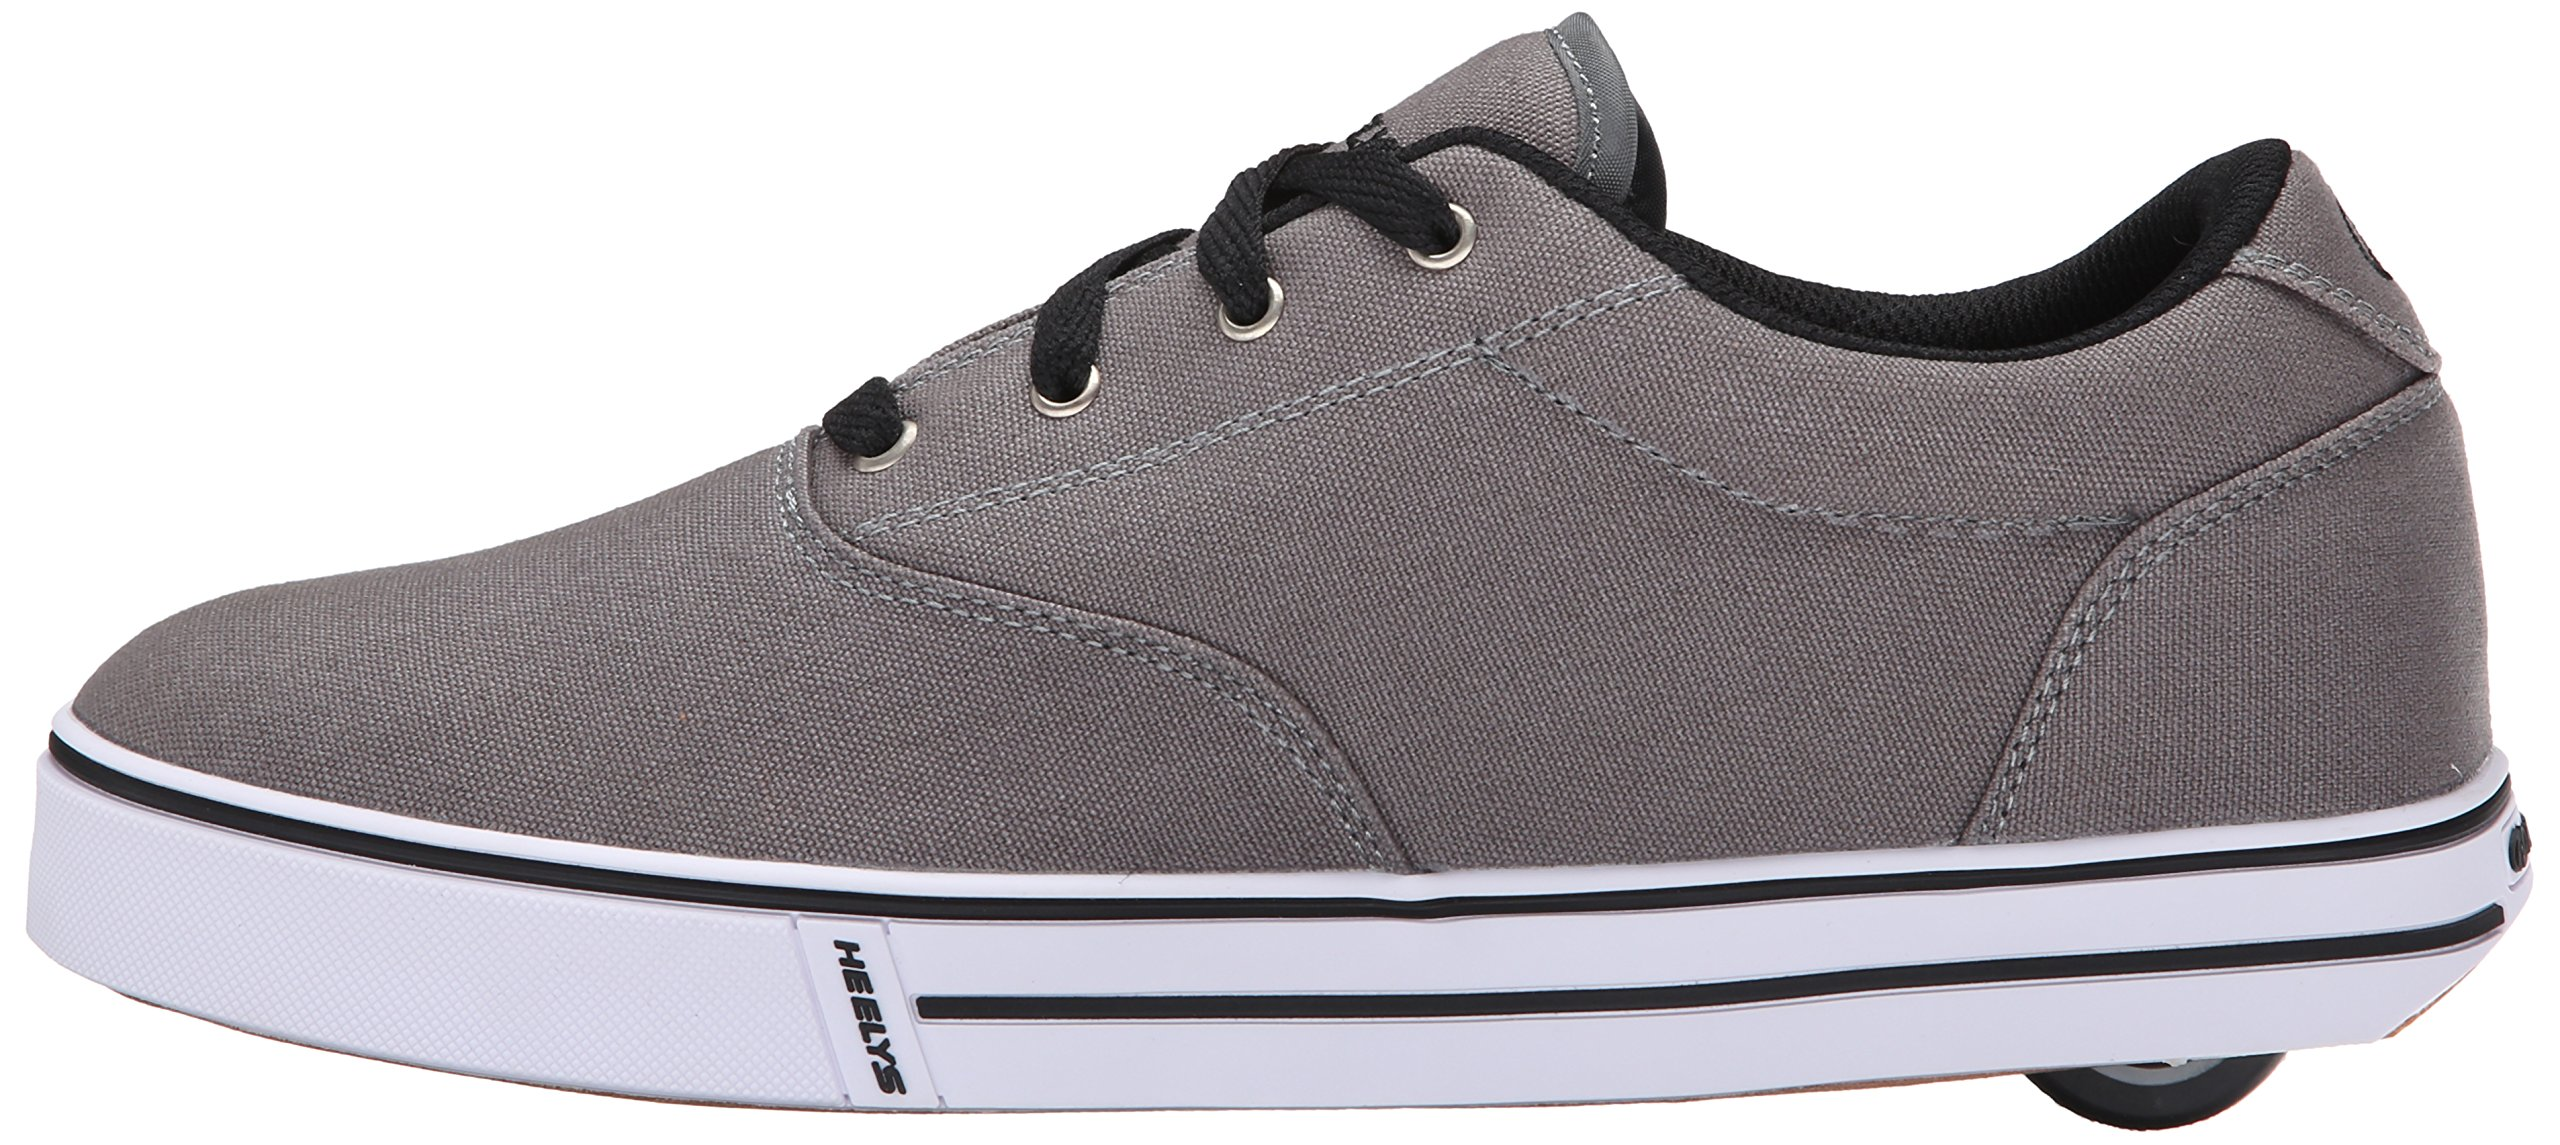 Heelys Men's Launch Fashion Sneaker Grey 10 M US by Heelys (Image #5)